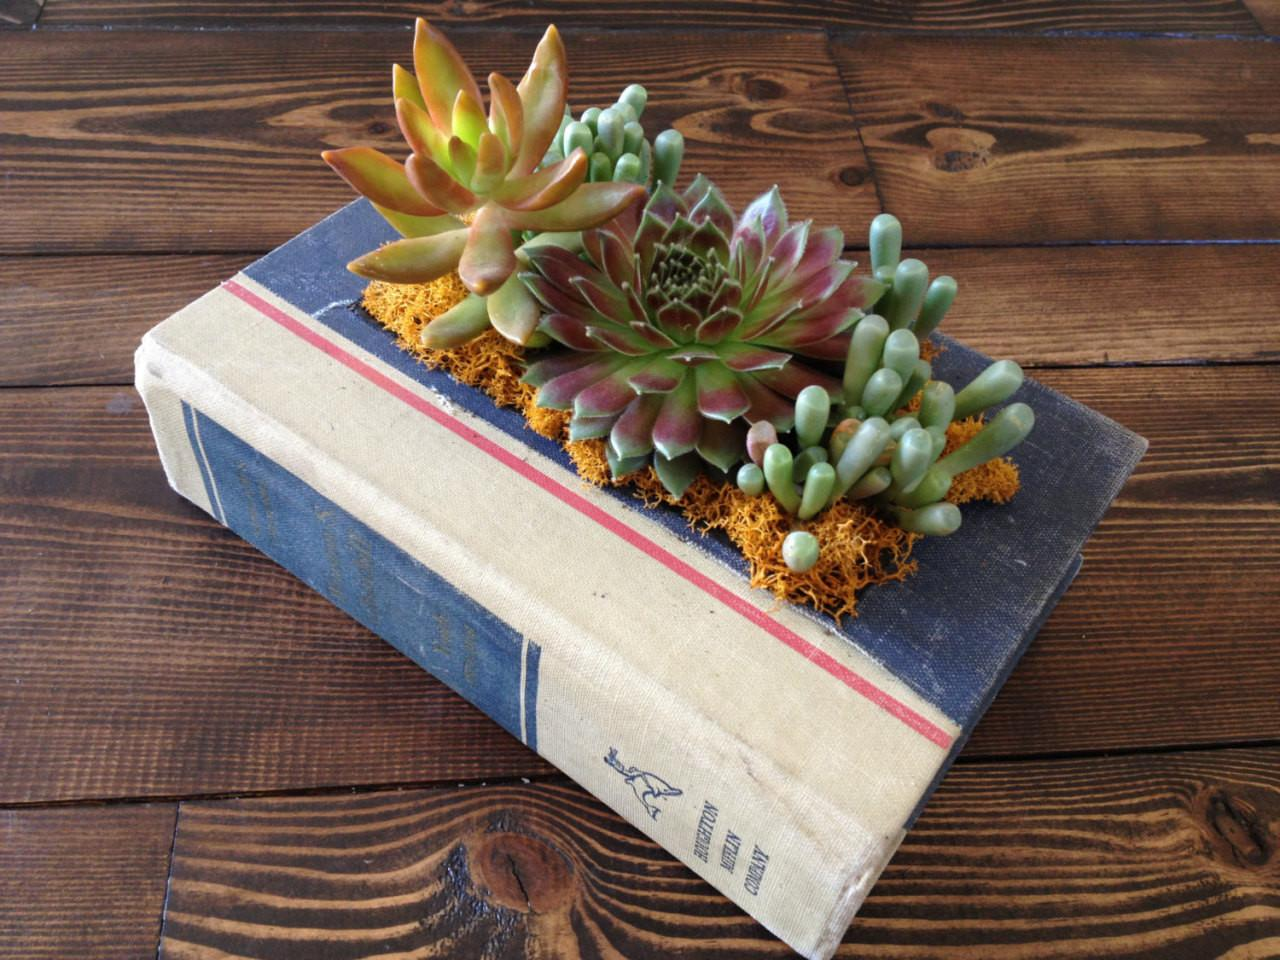 Culture Lifestyle Upcycled Vintage Book Planters